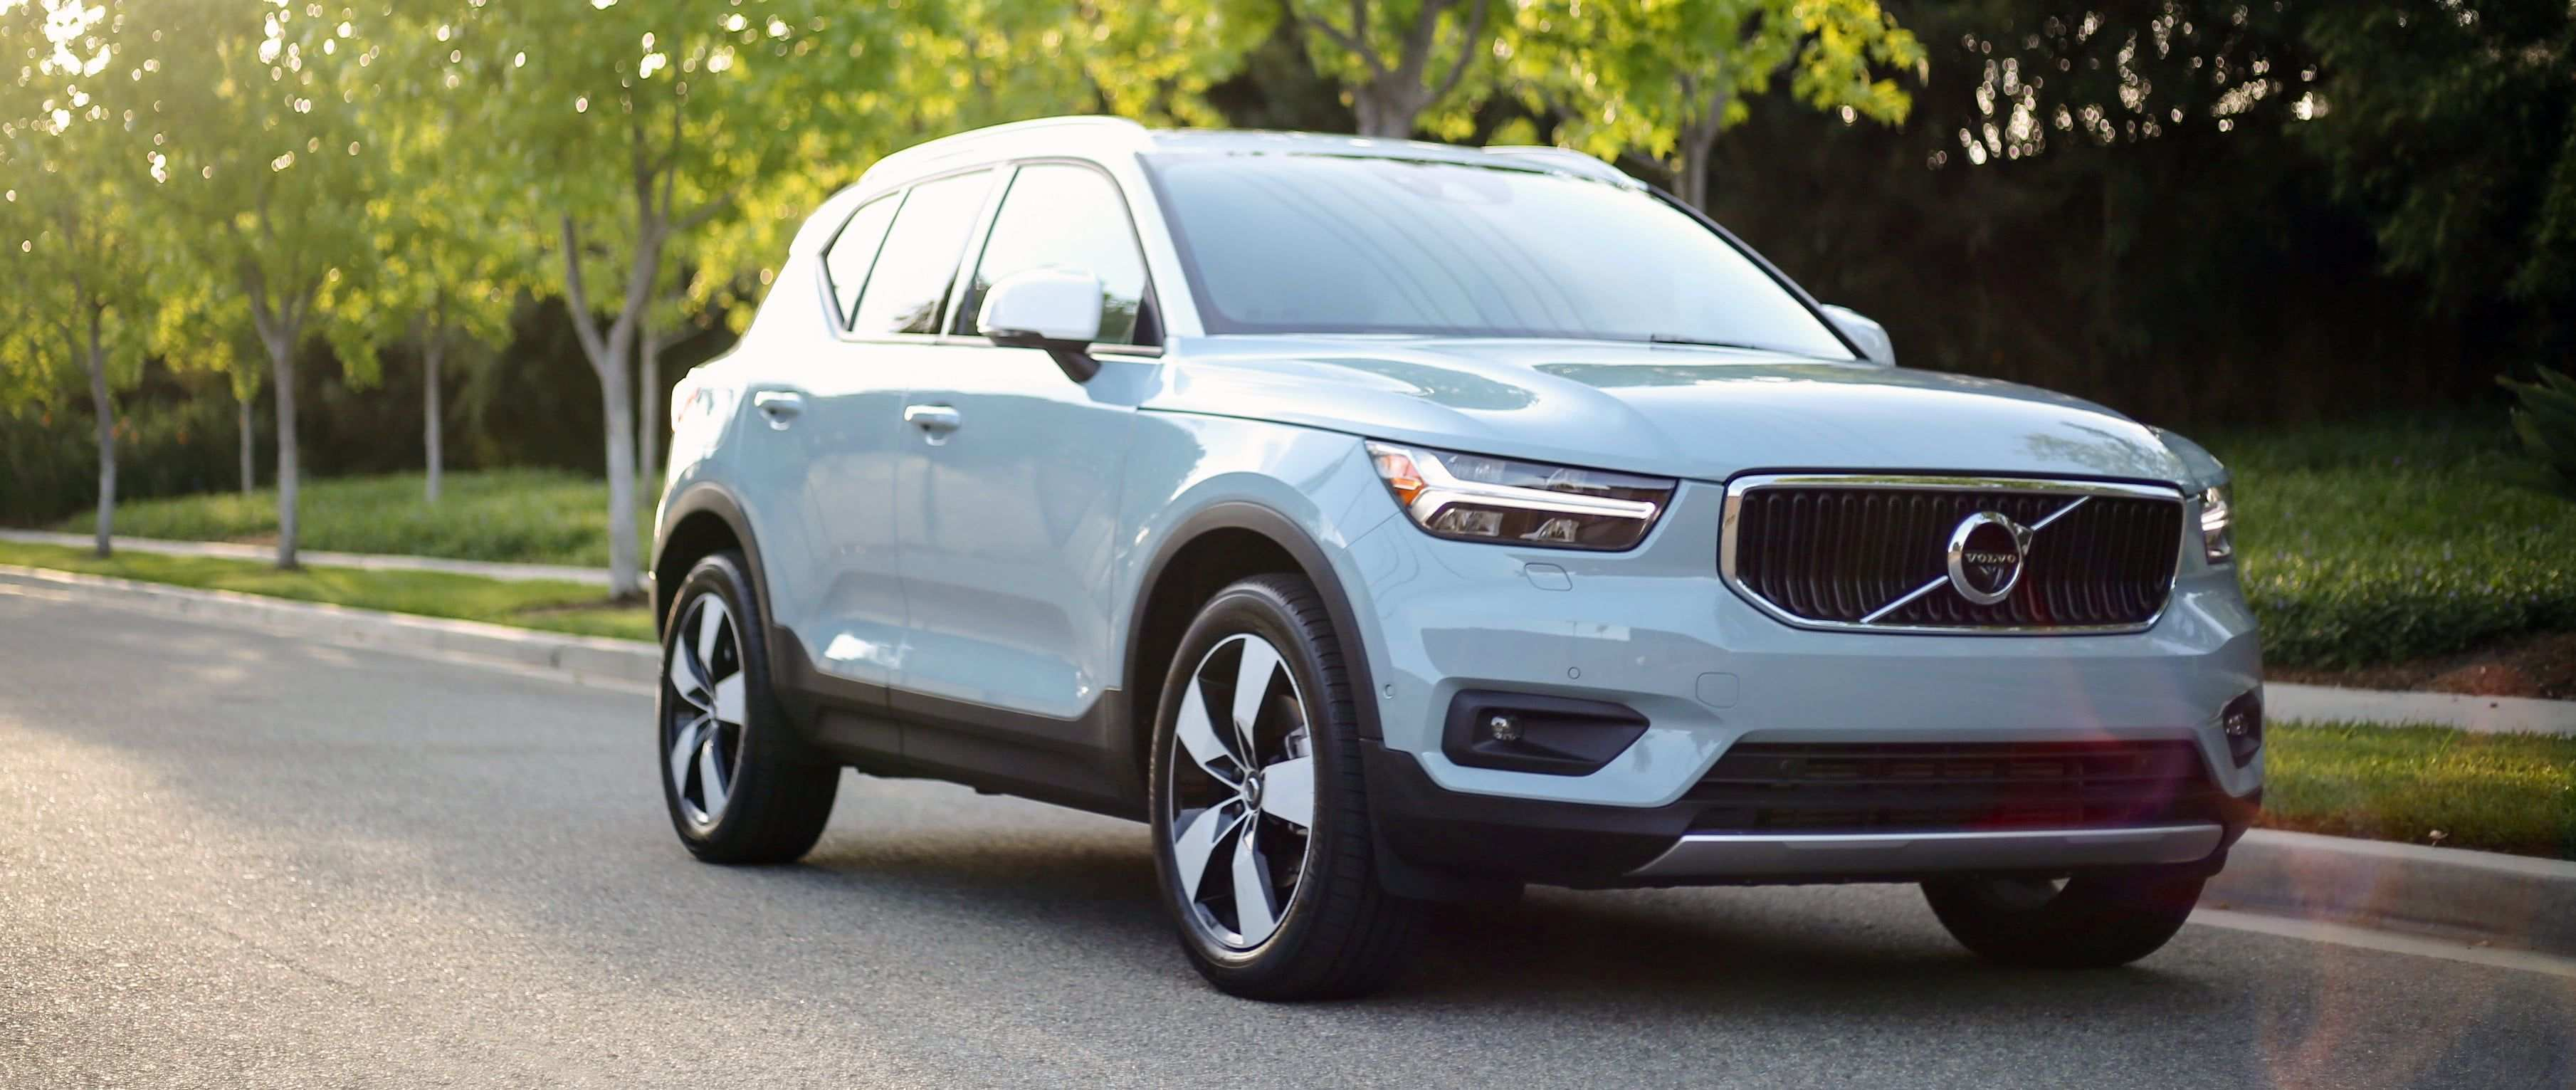 32 All New 2020 Volvo Xc40 Gas Mileage Release by 2020 Volvo Xc40 Gas Mileage